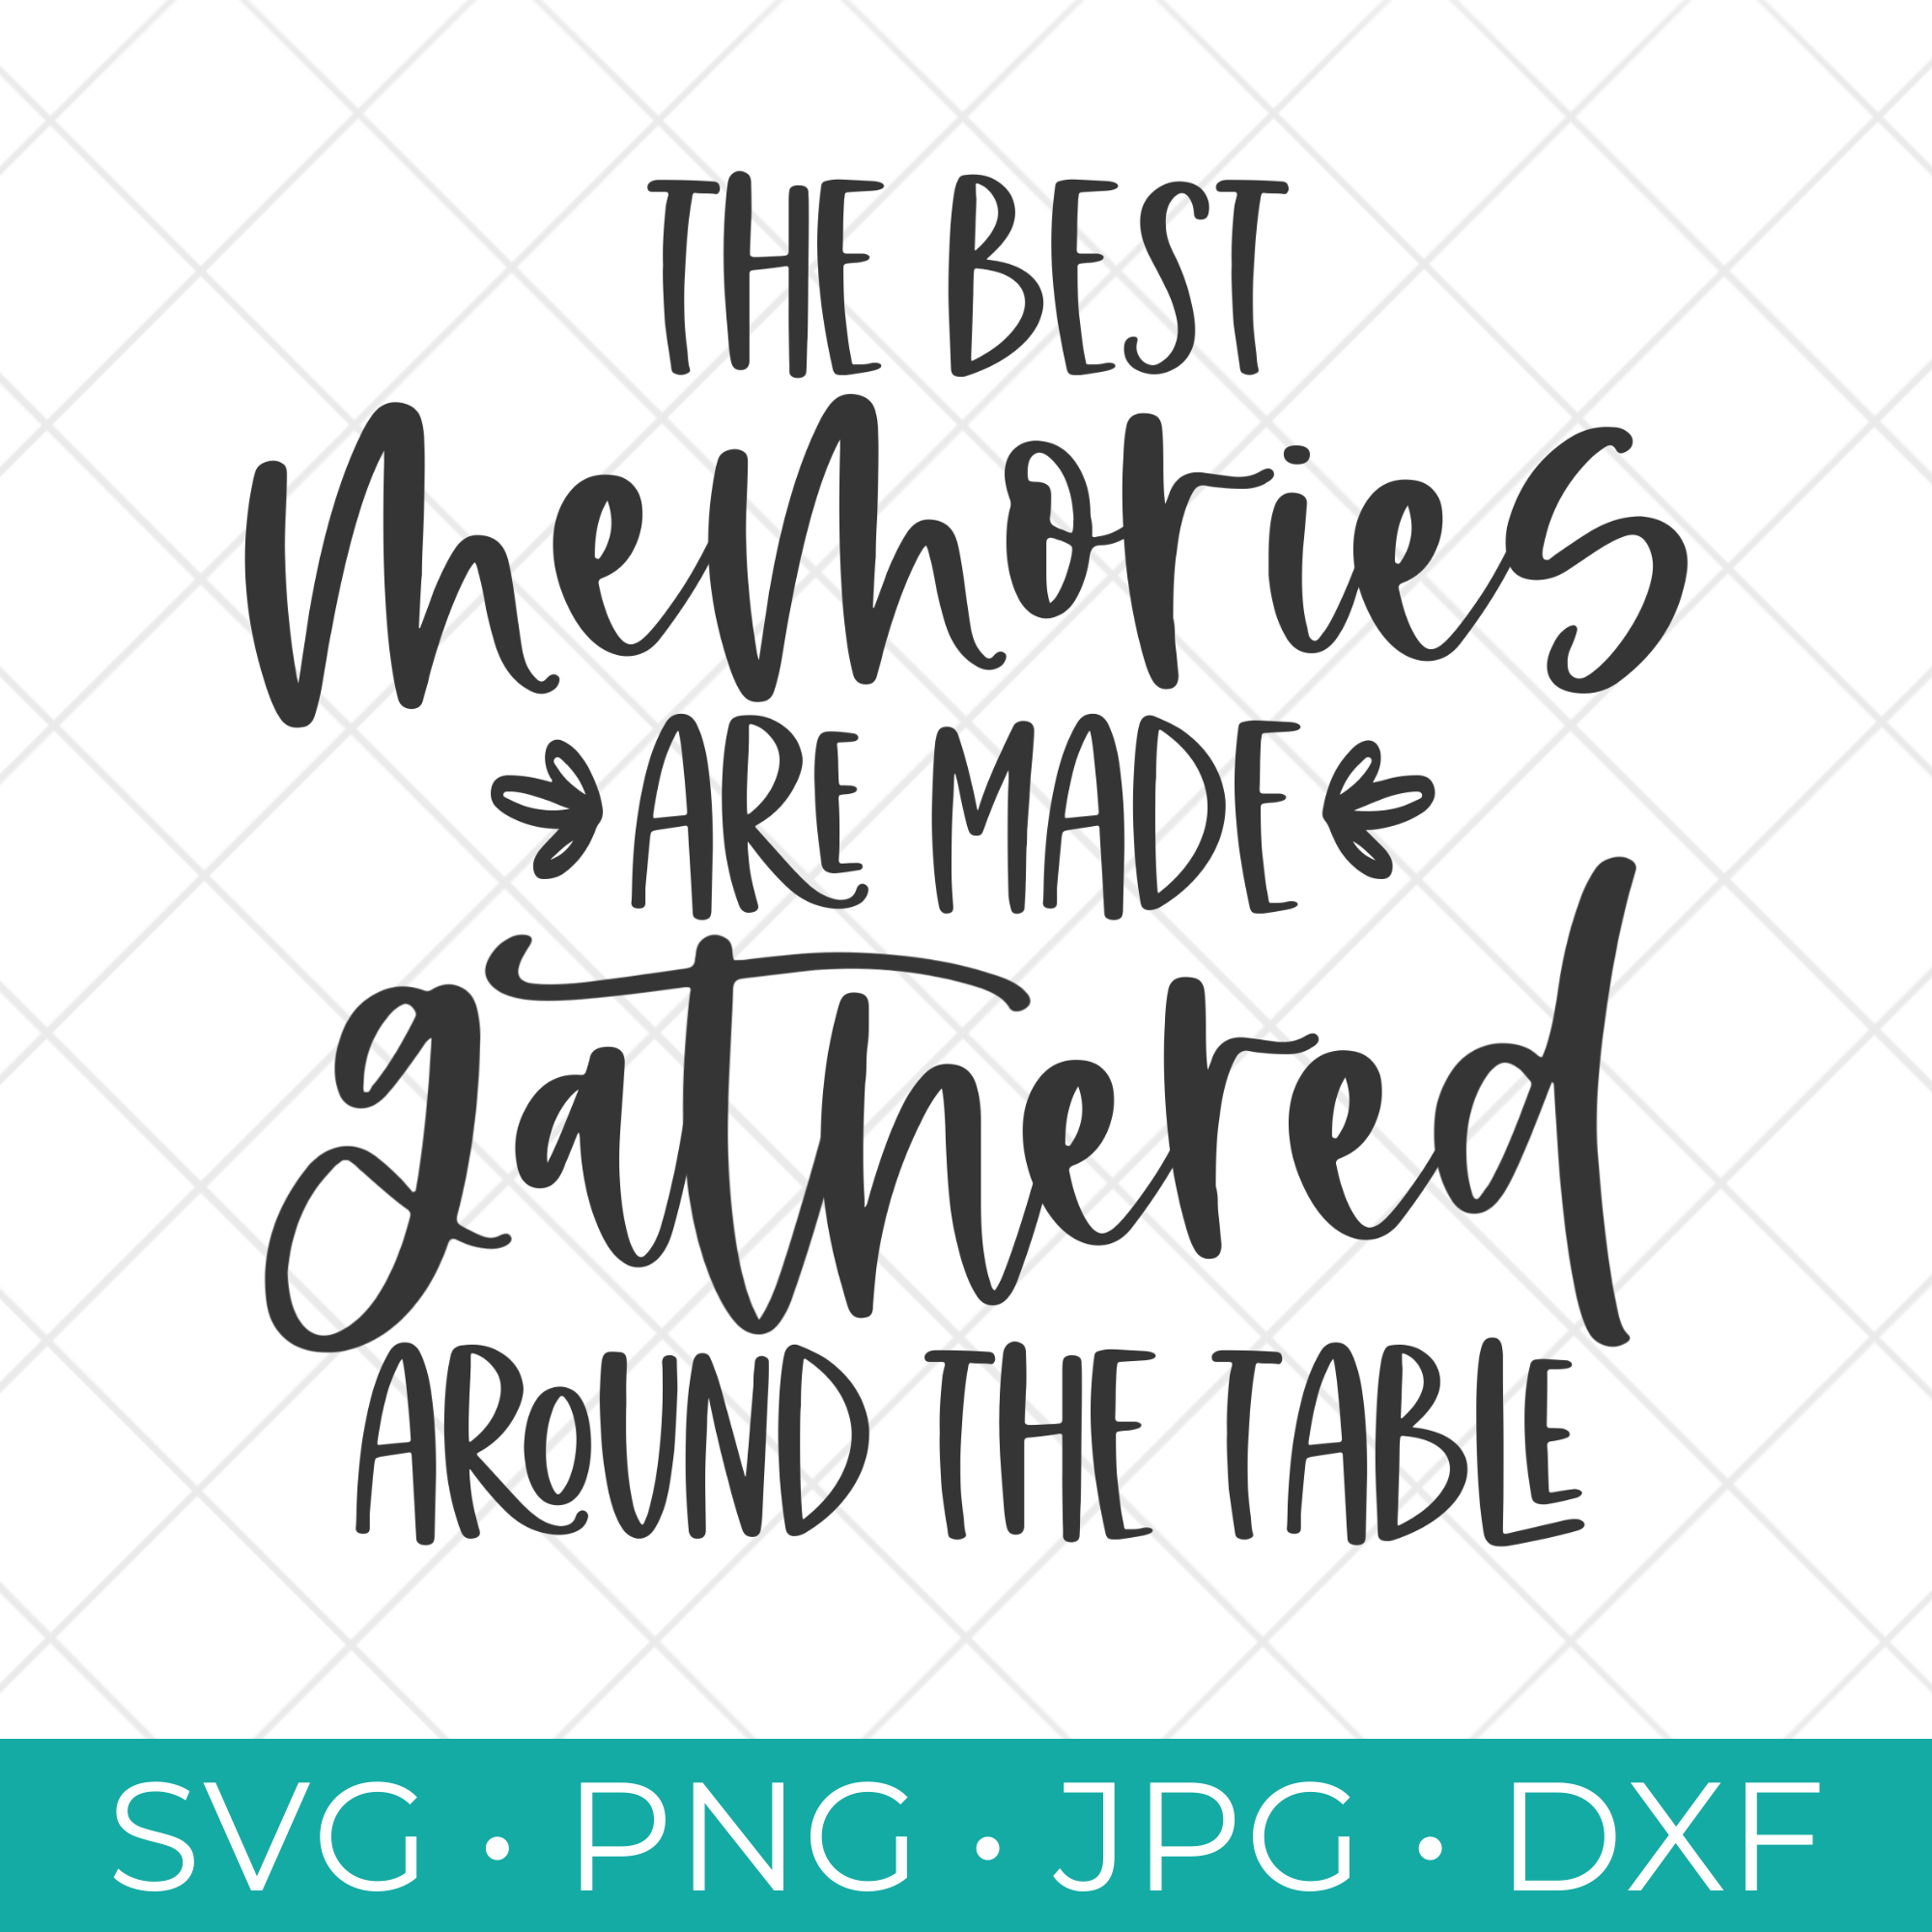 The Best Memories Are Made Gathered Around the Table SVG